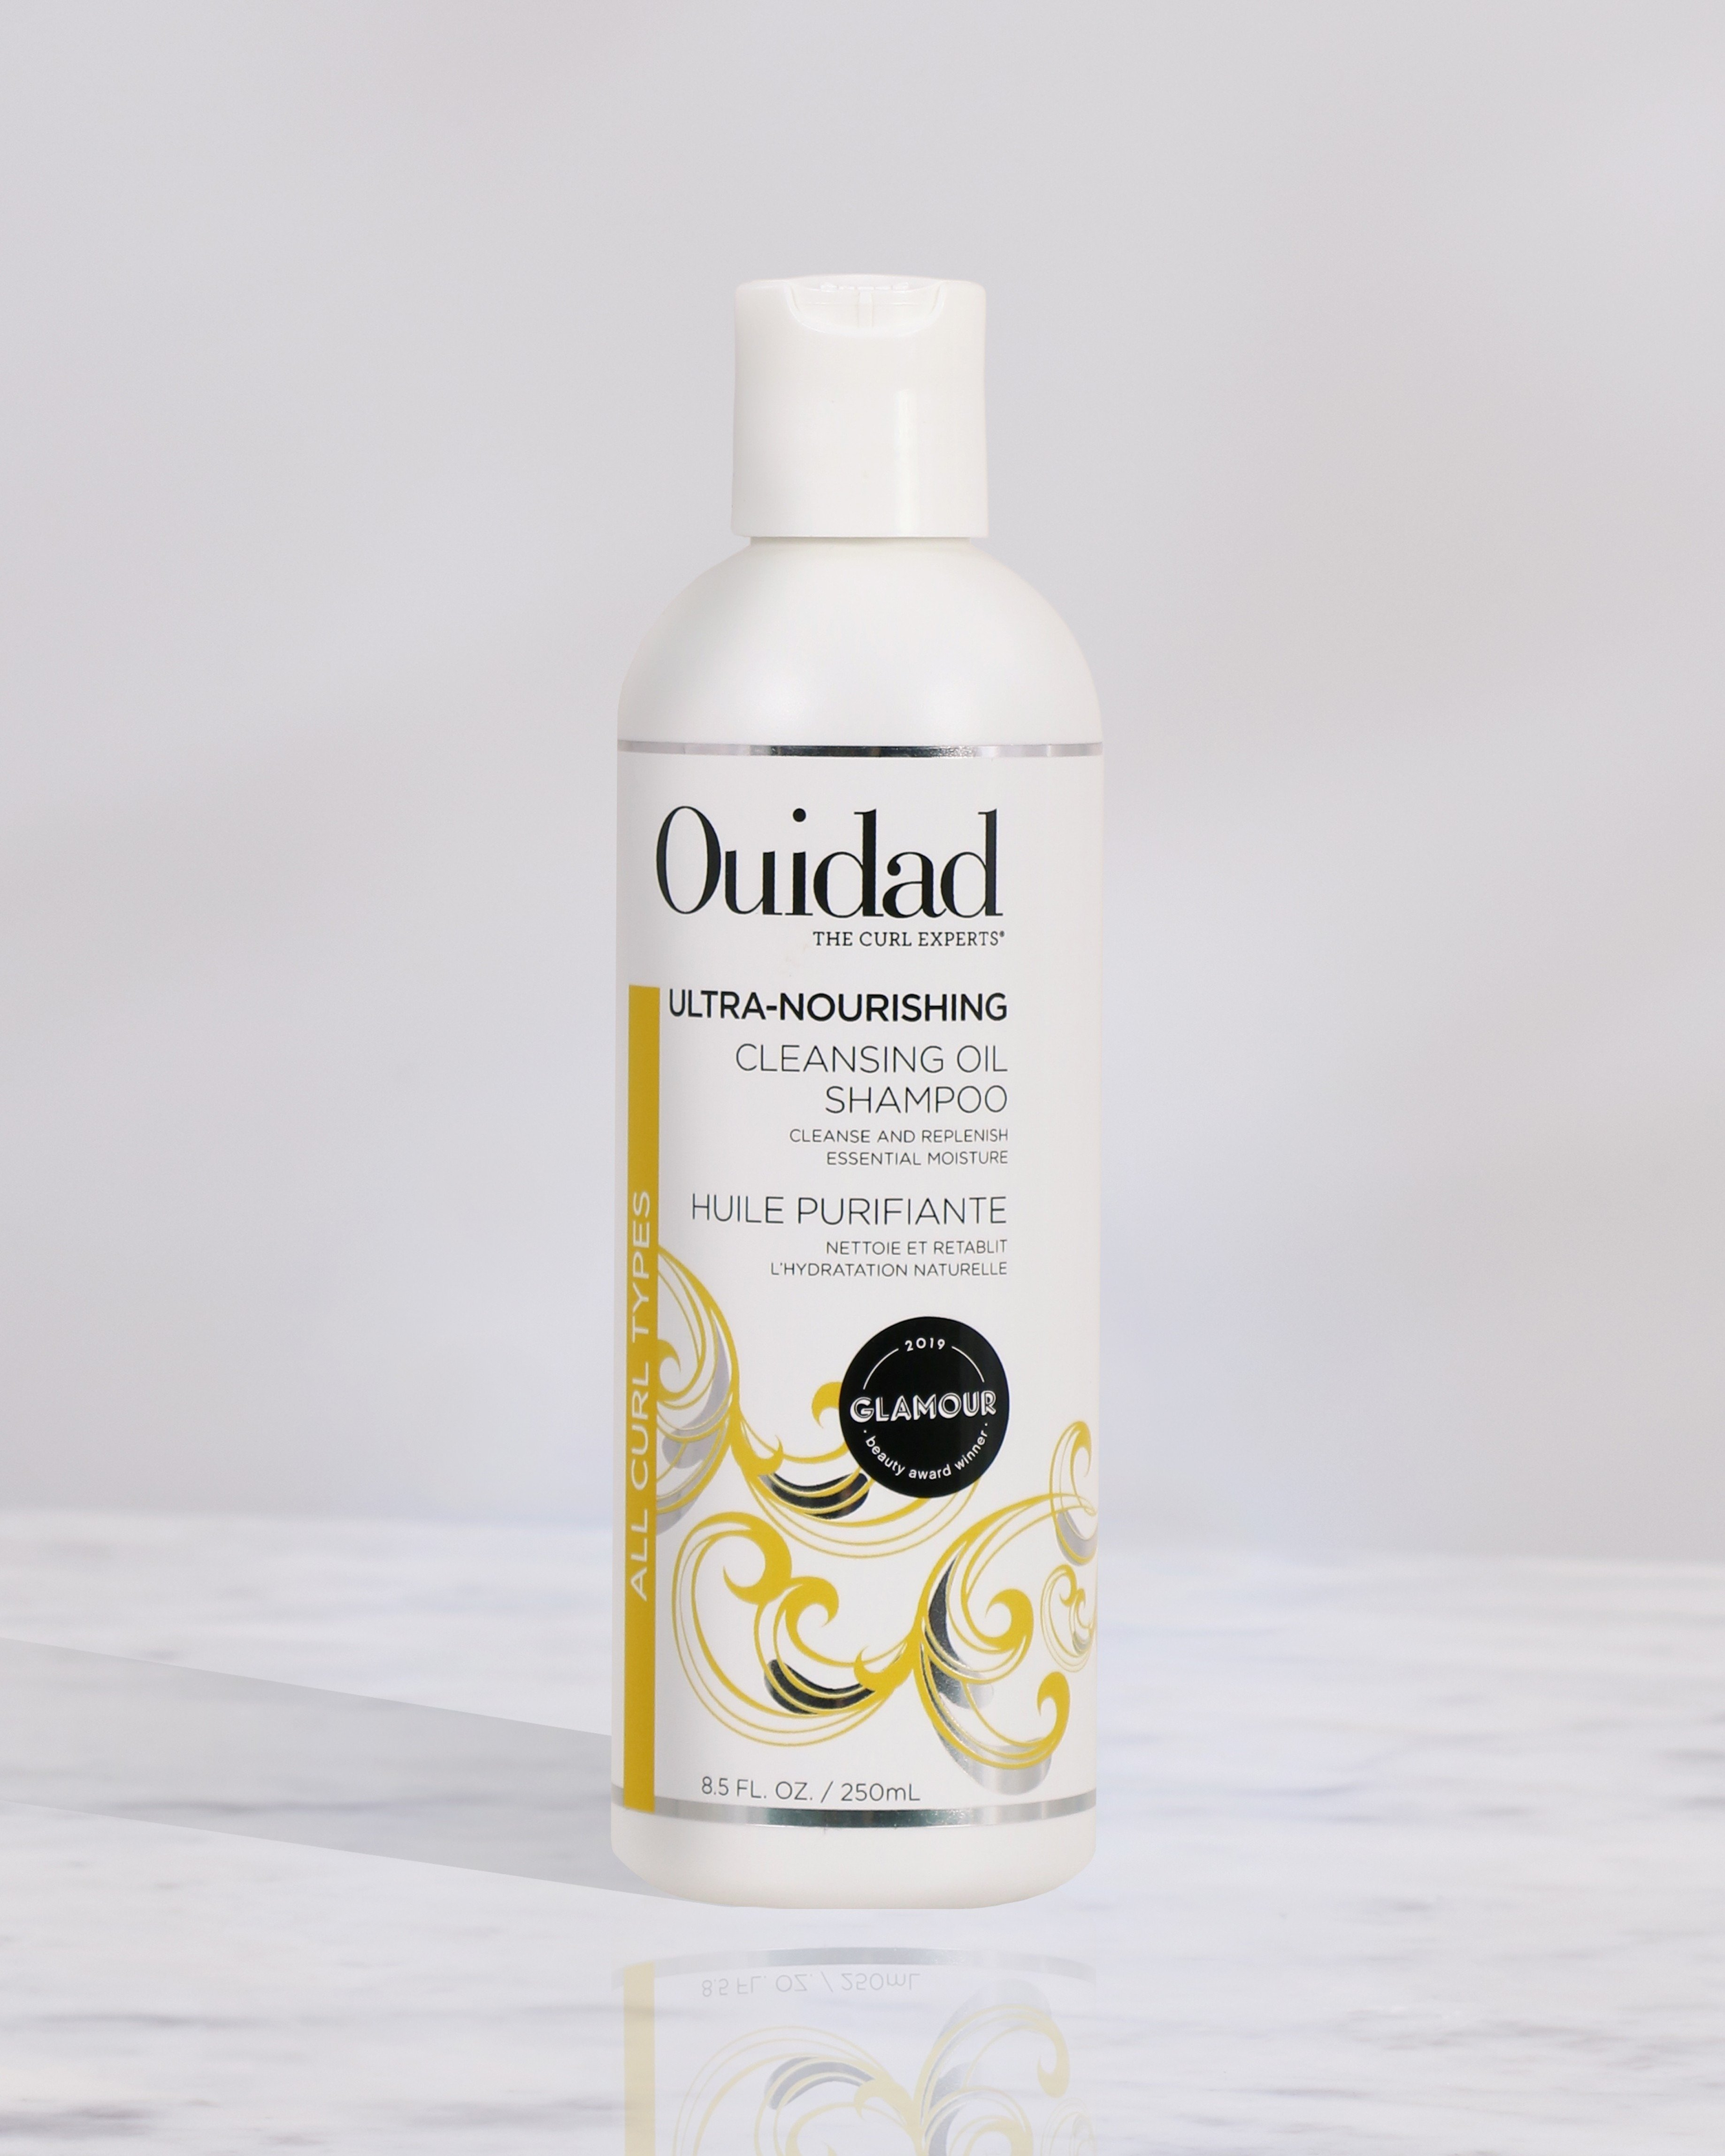 Ouidad Cleansing Oil Shampoo $26